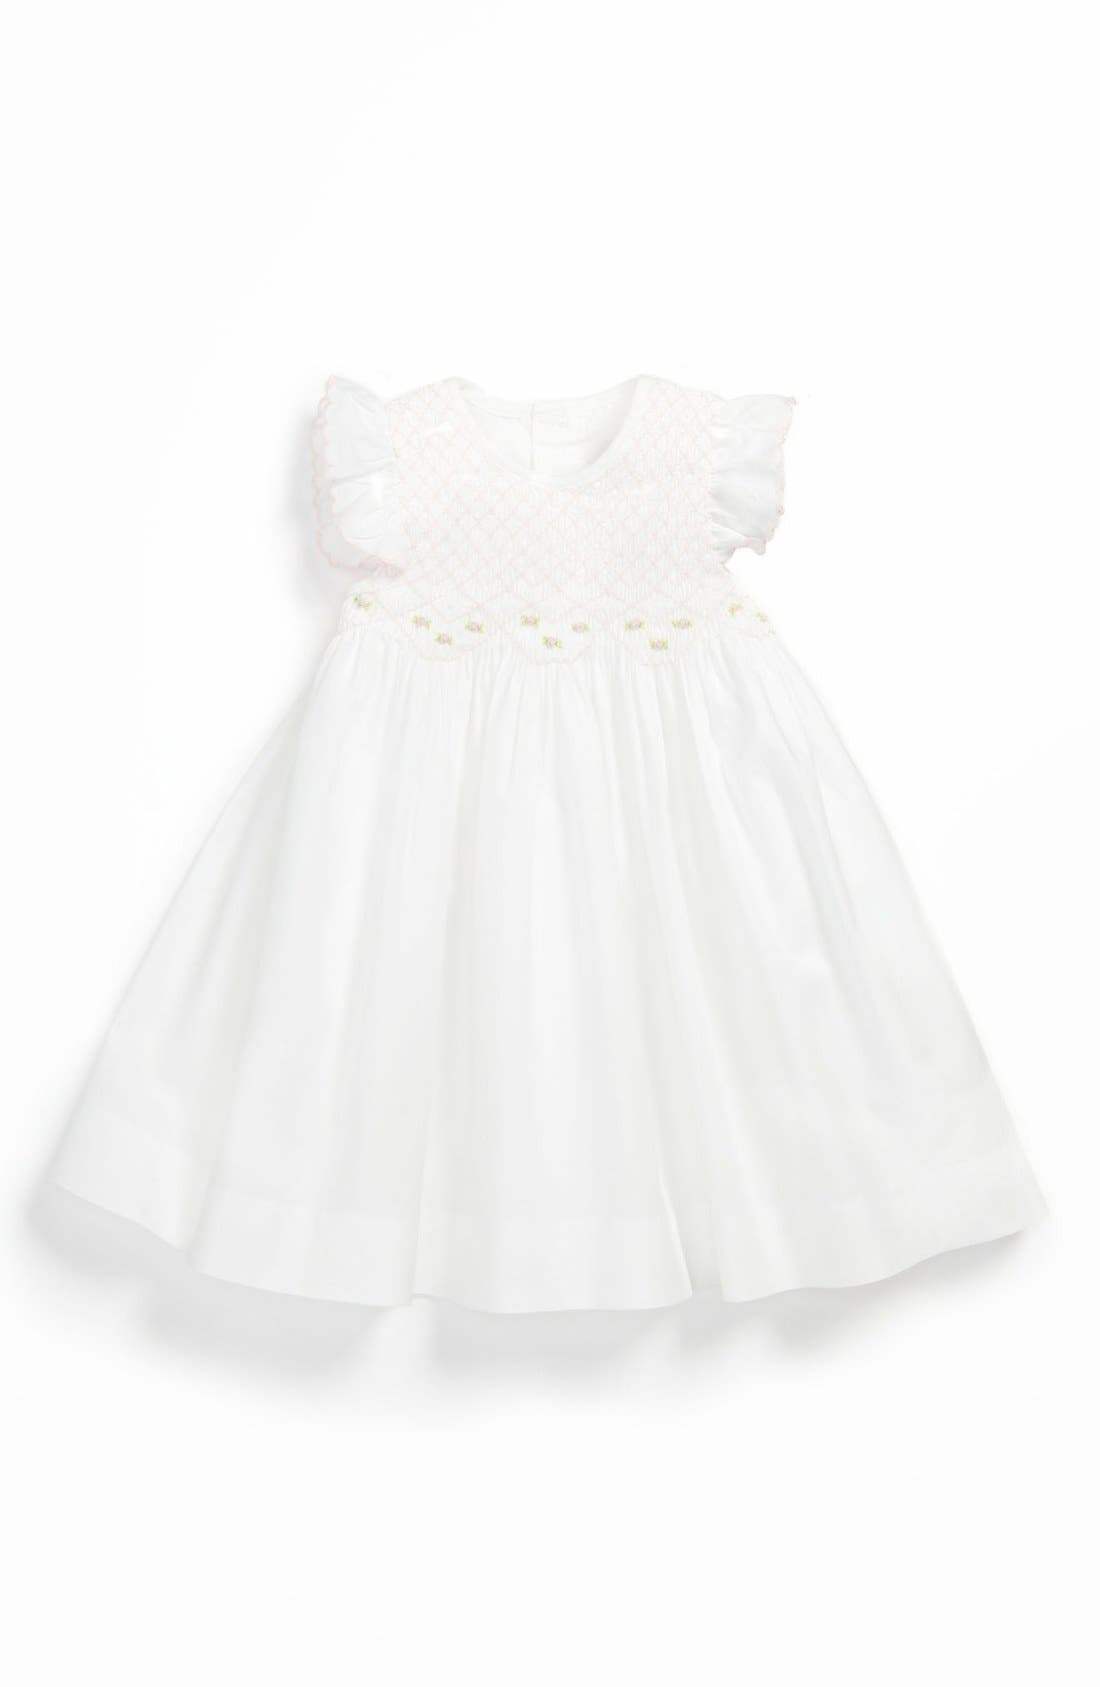 Alternate Image 1 Selected - Kissy Kissy 'Brianna' Dress (Baby Girls)